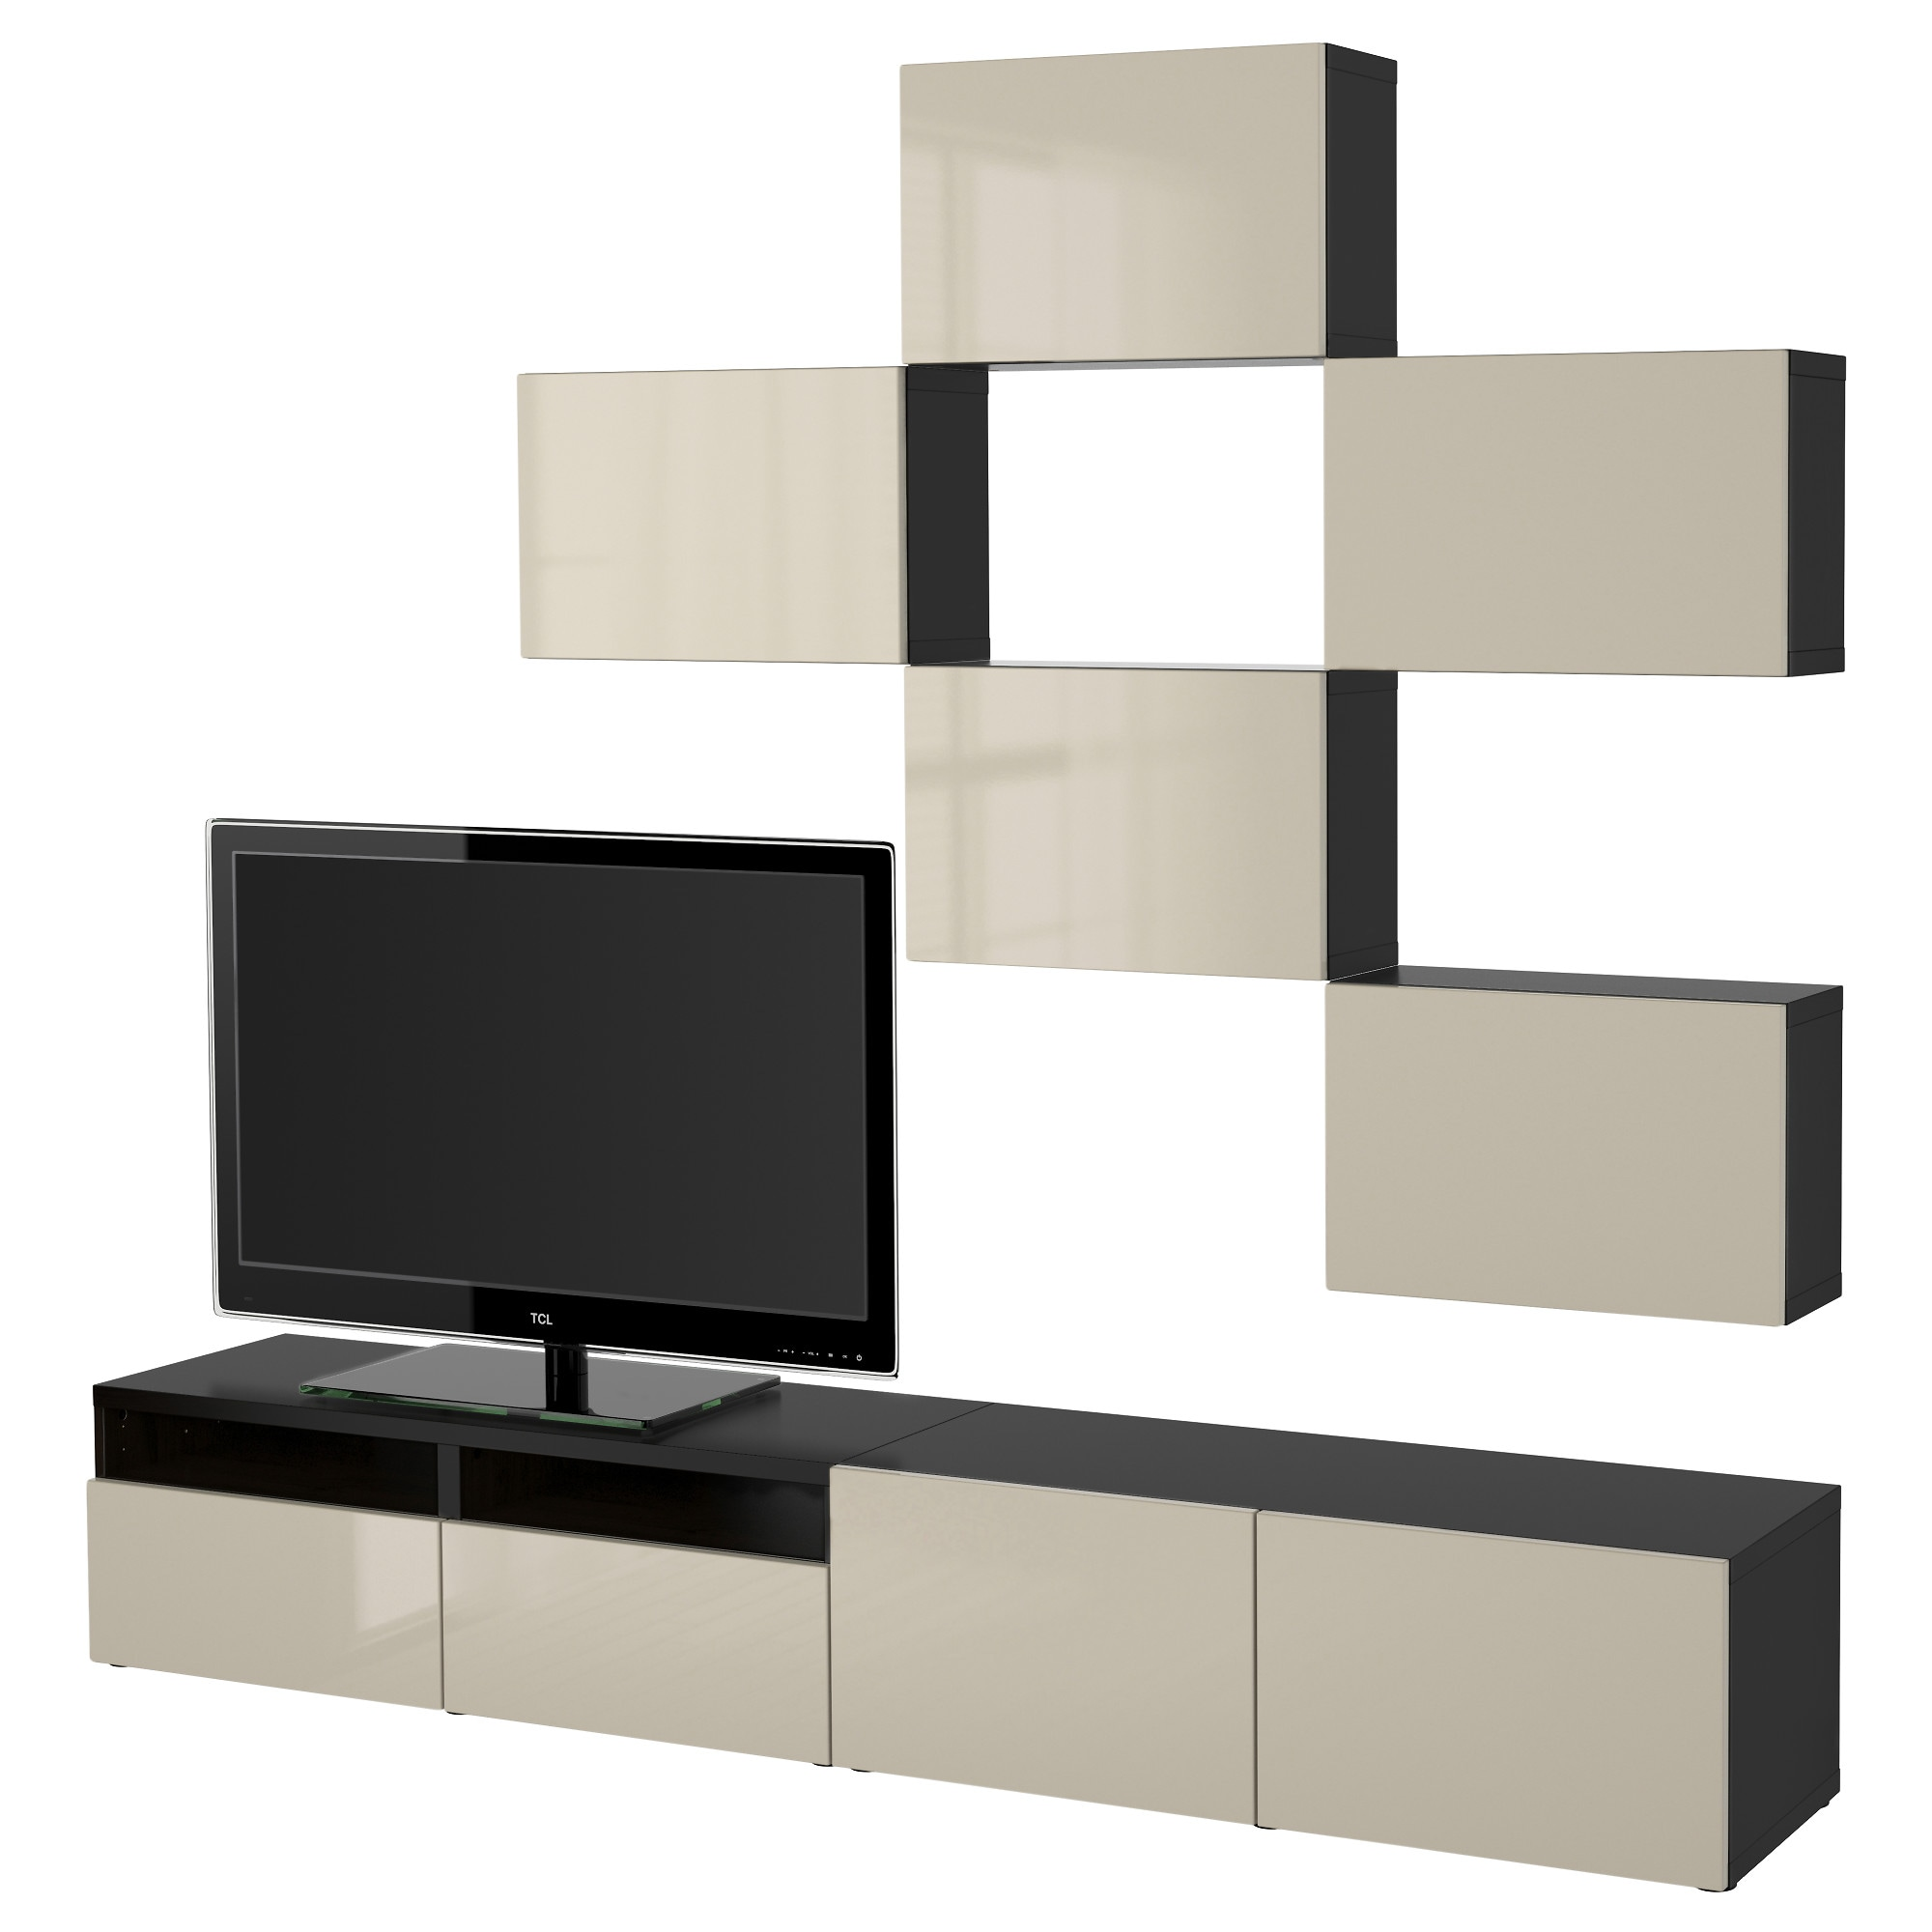 Ikea Meuble Tv - Best Tv Storage Combination Black Brown Lappviken Light Gray [mjhdah]http://www.ikea.com/be/fr/images/products/tomn%C3%A4s-meuble-tv-brun-noir__0381860_pe557461_s5.jpg